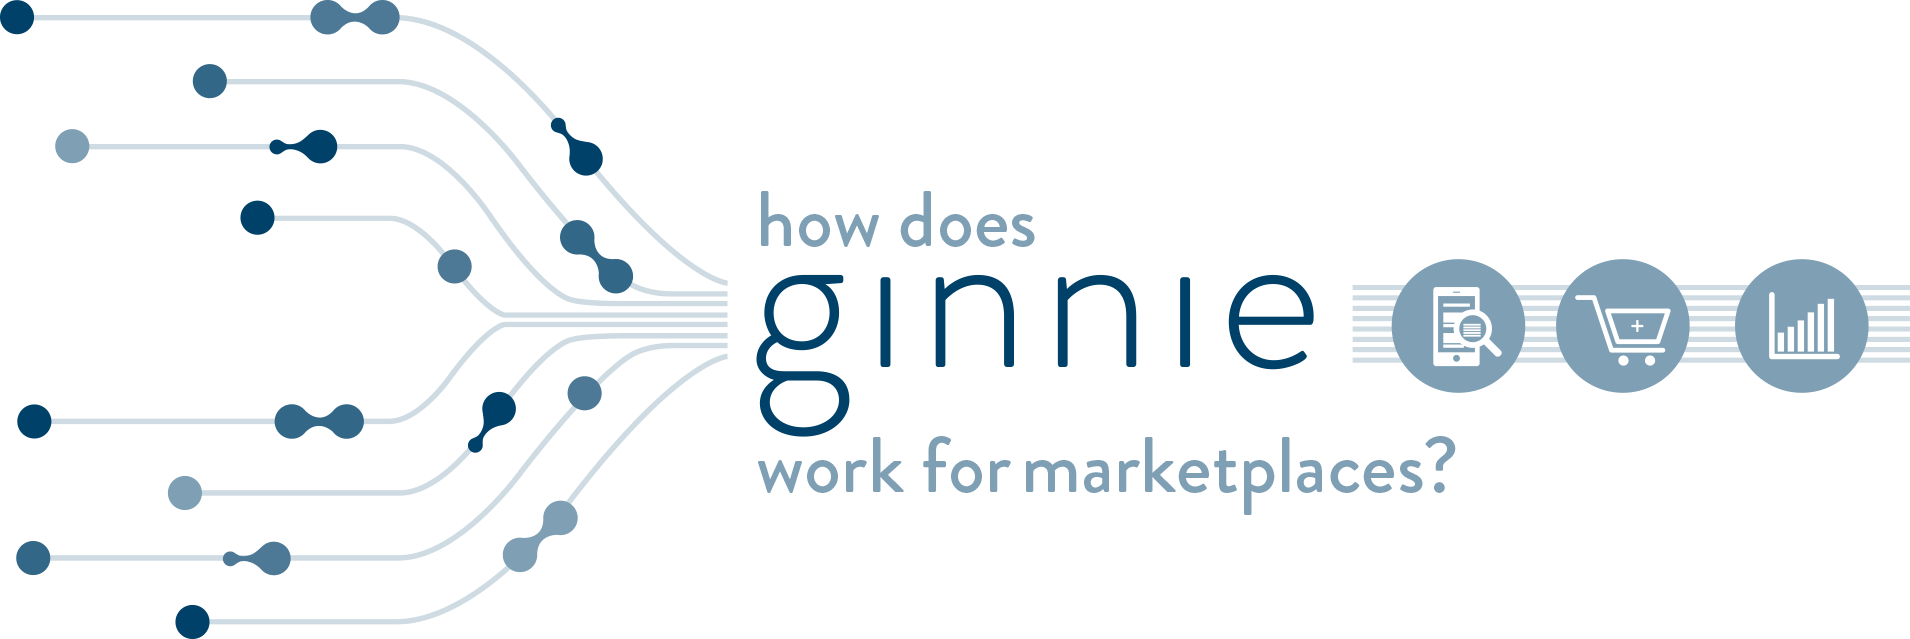 infographic outlining how ginnie works for marketplaces